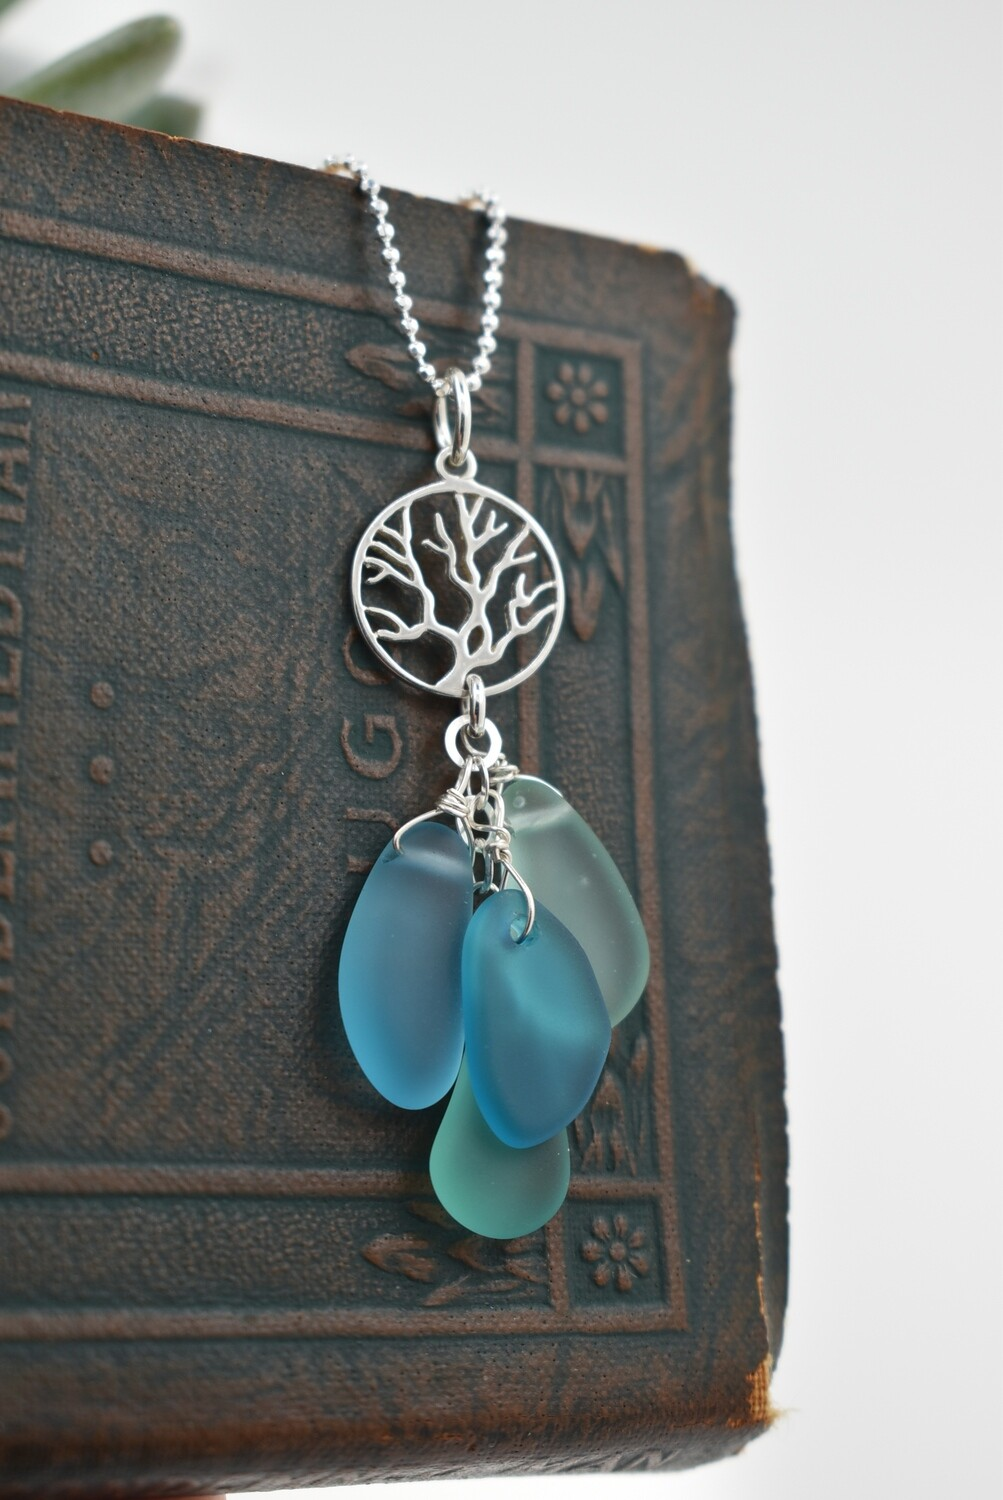 Seaglass Necklace With Silver Coral Accent (matching earrings available)